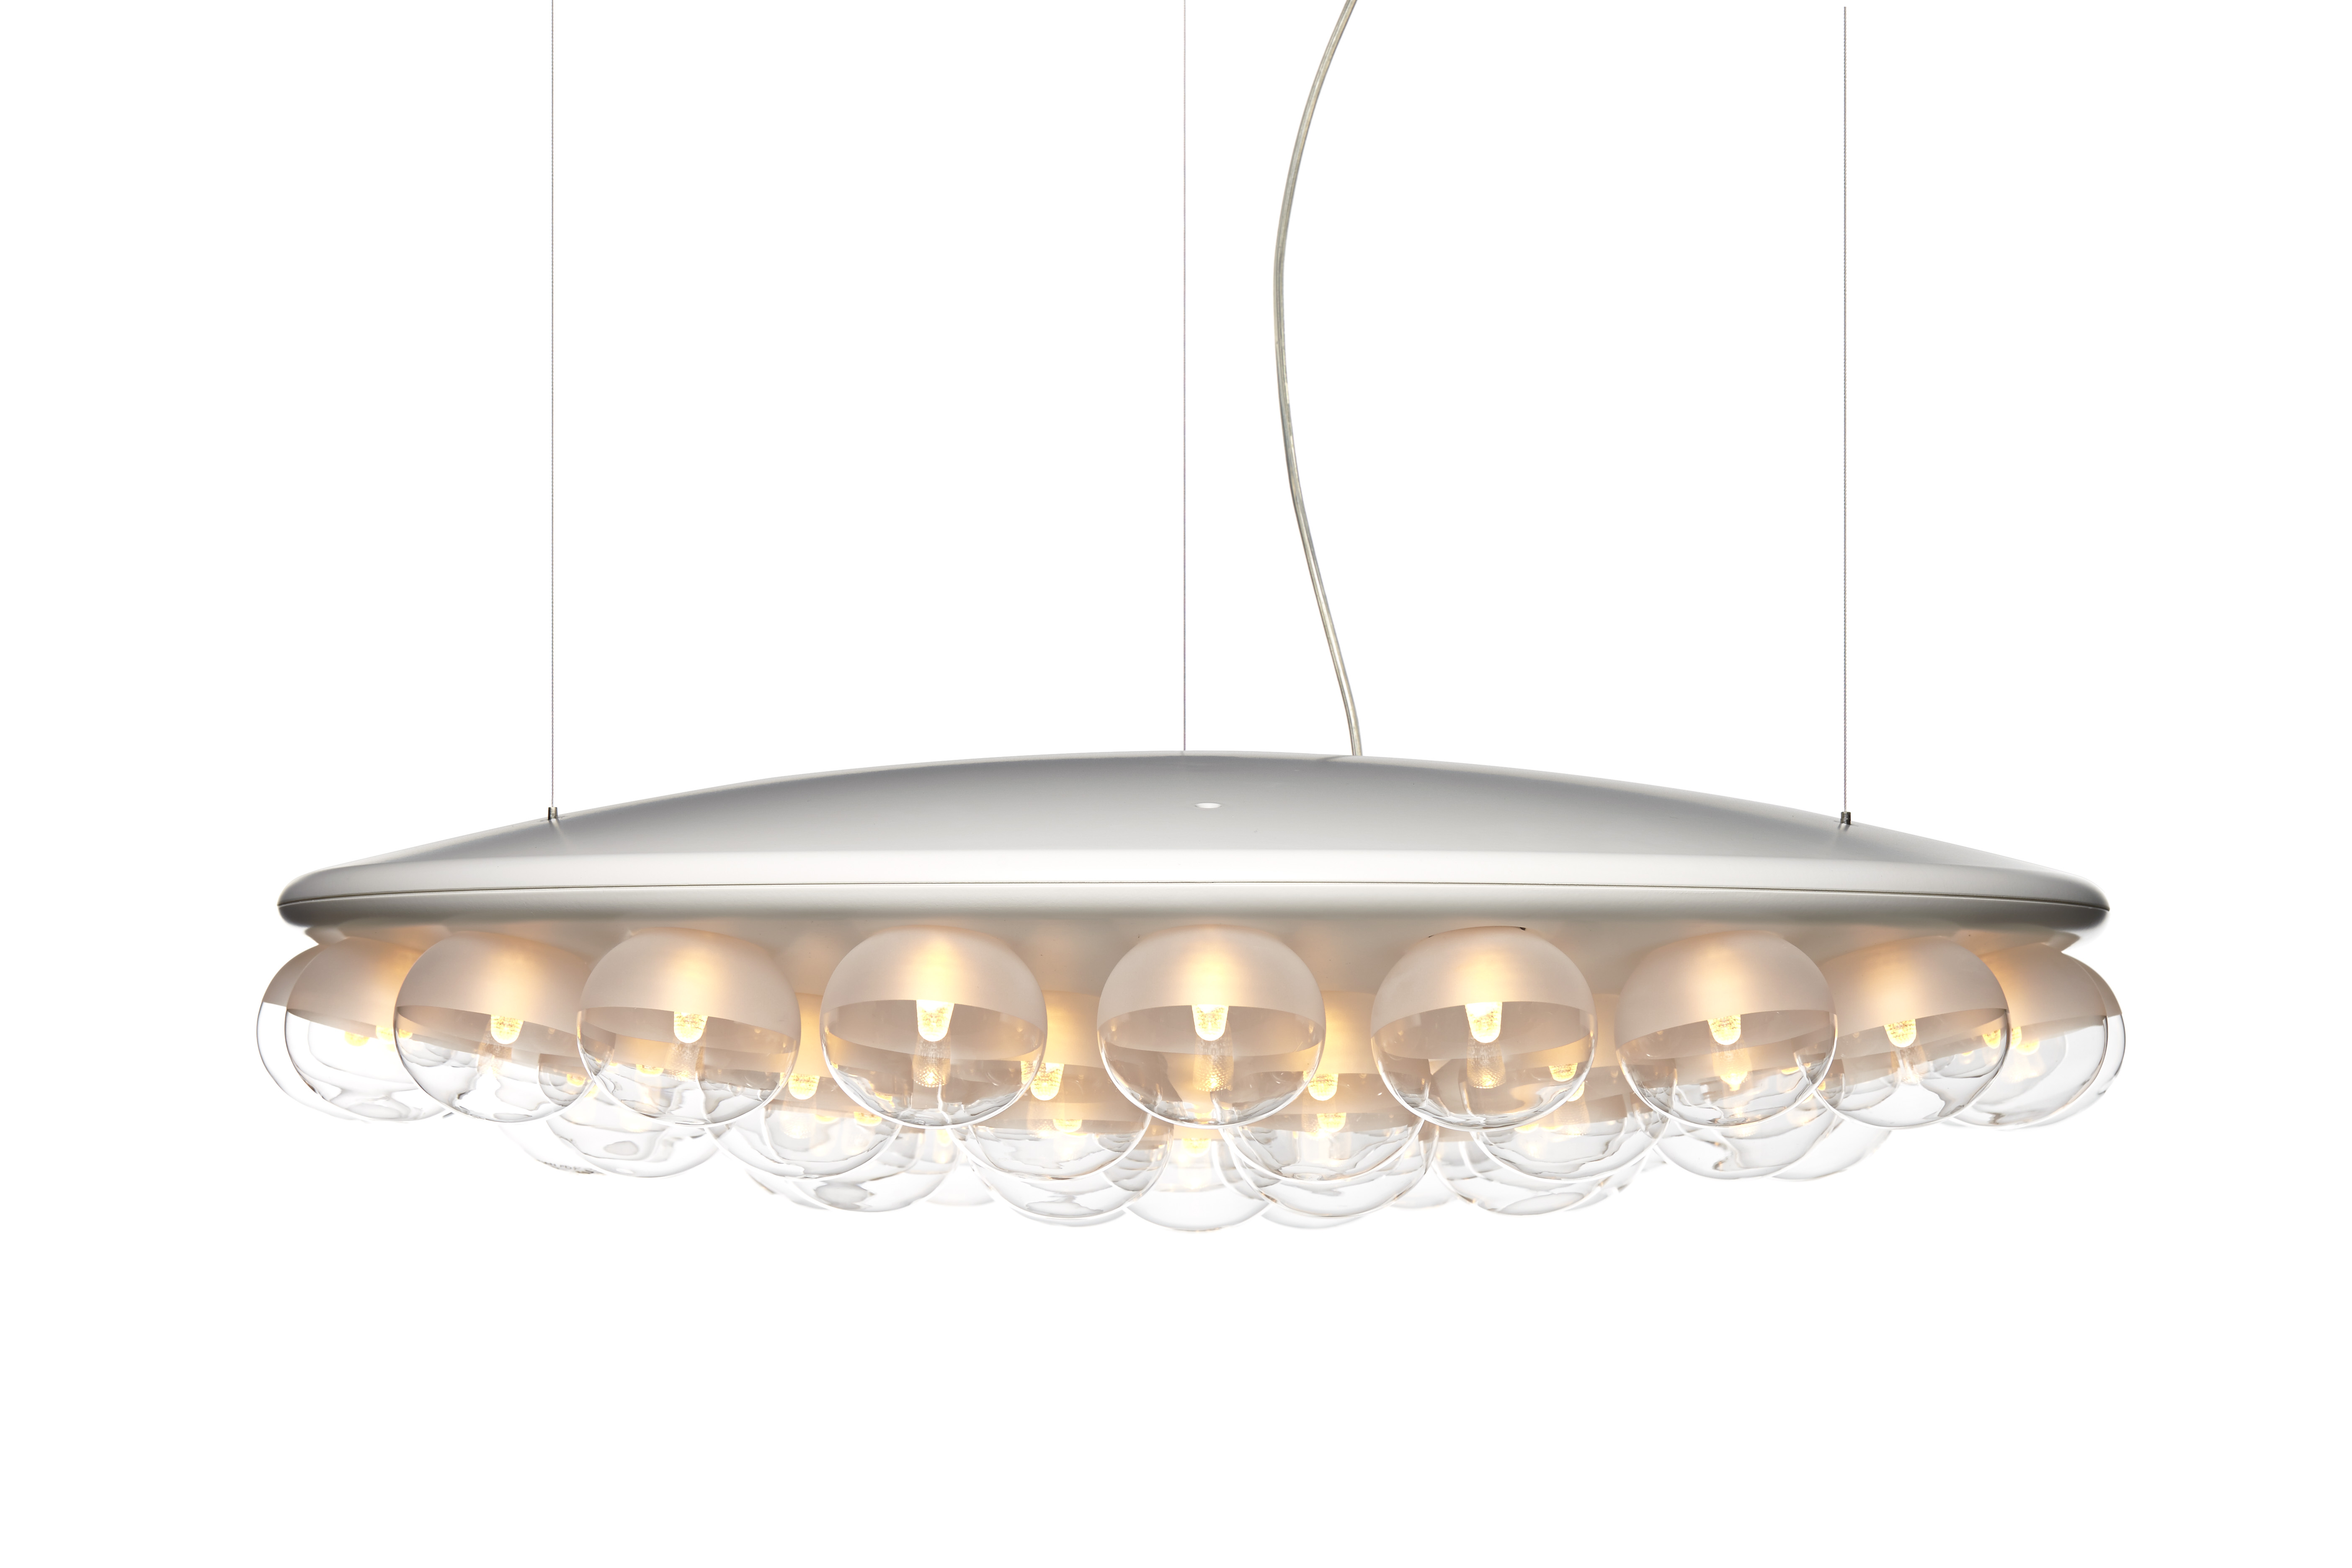 prop-light-round-single-on-214-300dpi-moooi